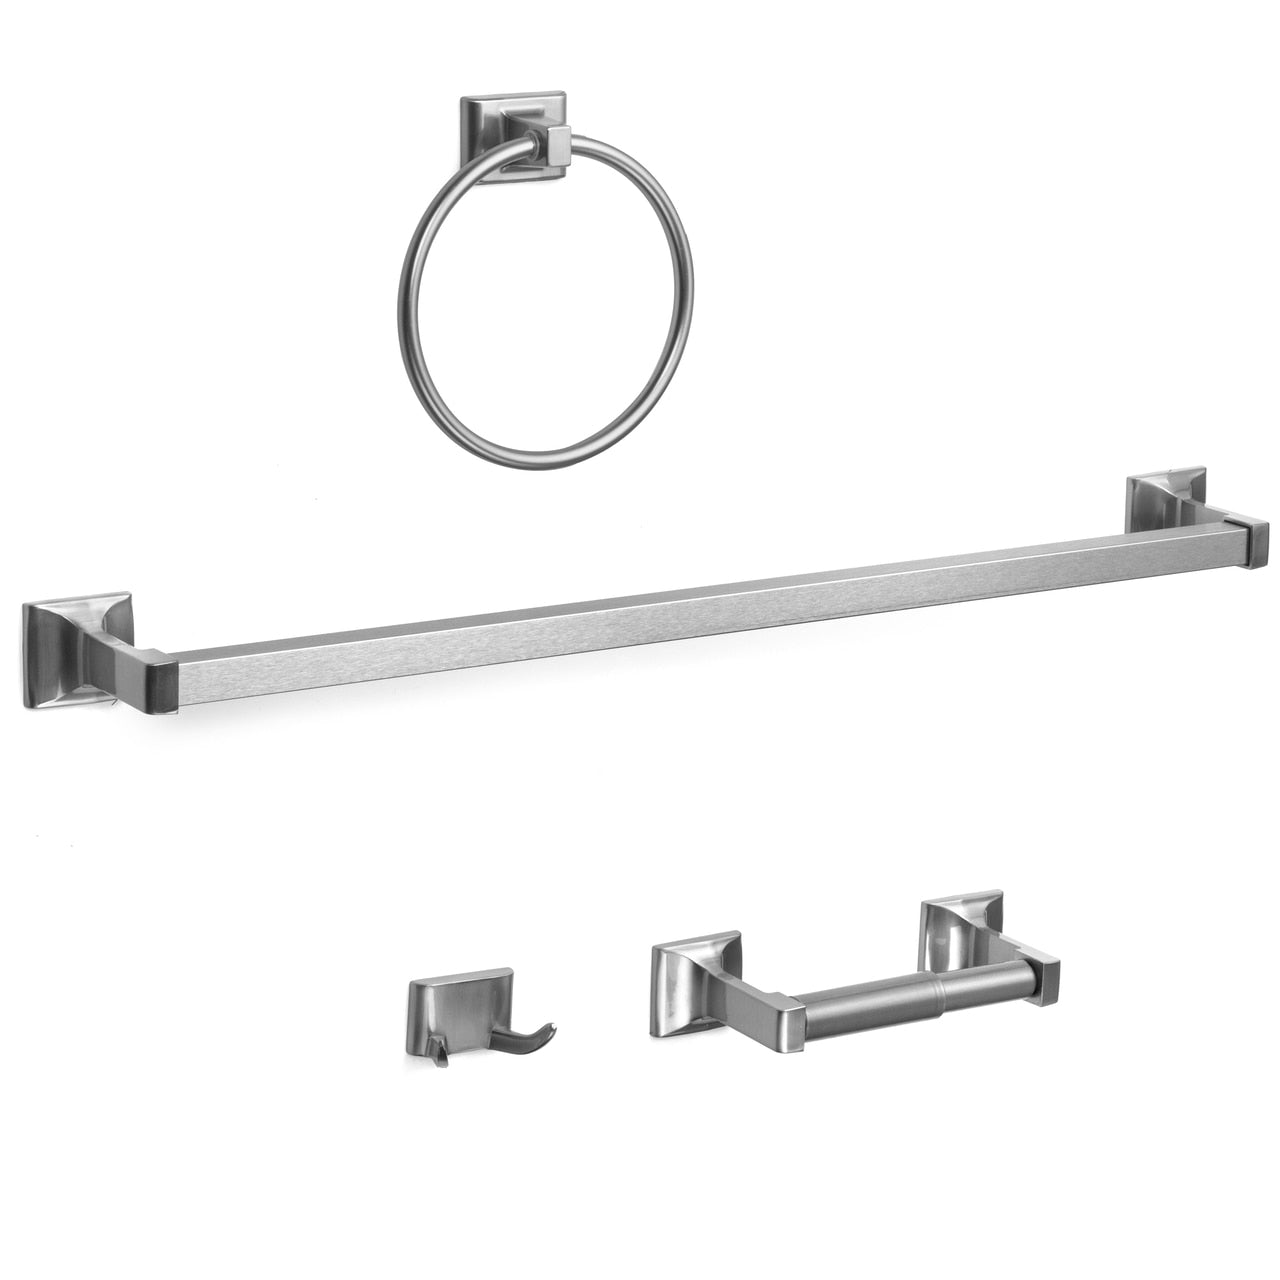 Designers Impressions Eclipse Series 4 Piece Satin Nickel Bathroom Hardware Set